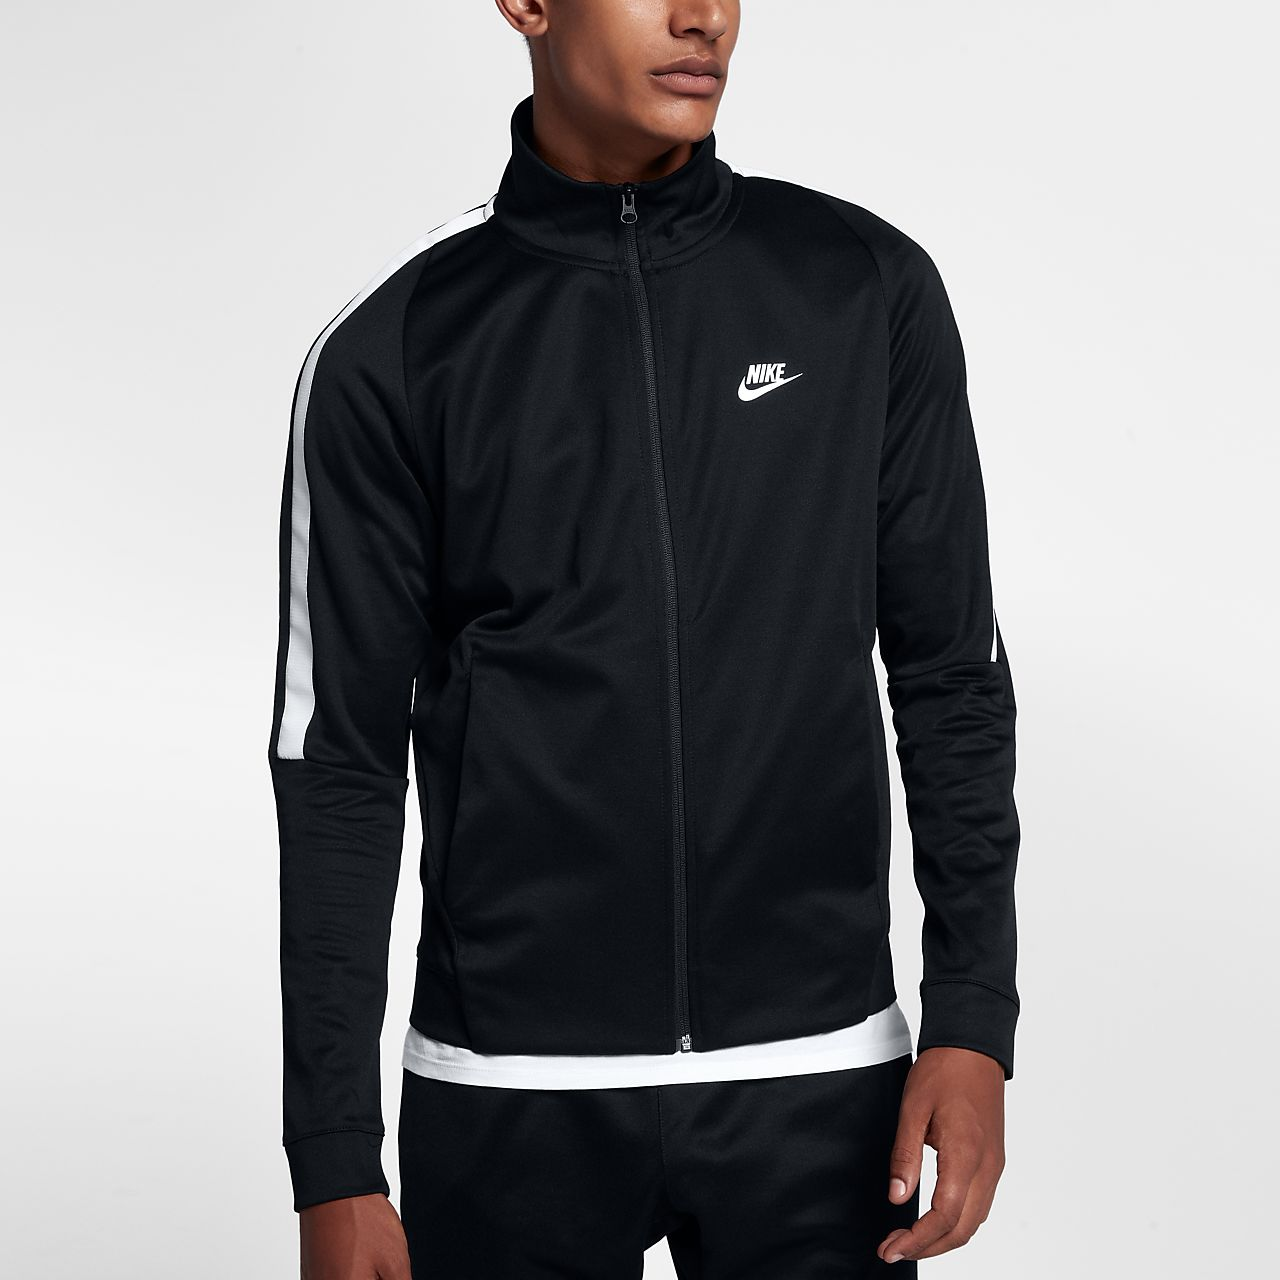 Dq4ndfhx Dq4ndfhx Homme N98 N98 Sportswear Veste Nike Fr Pour pqwOUO